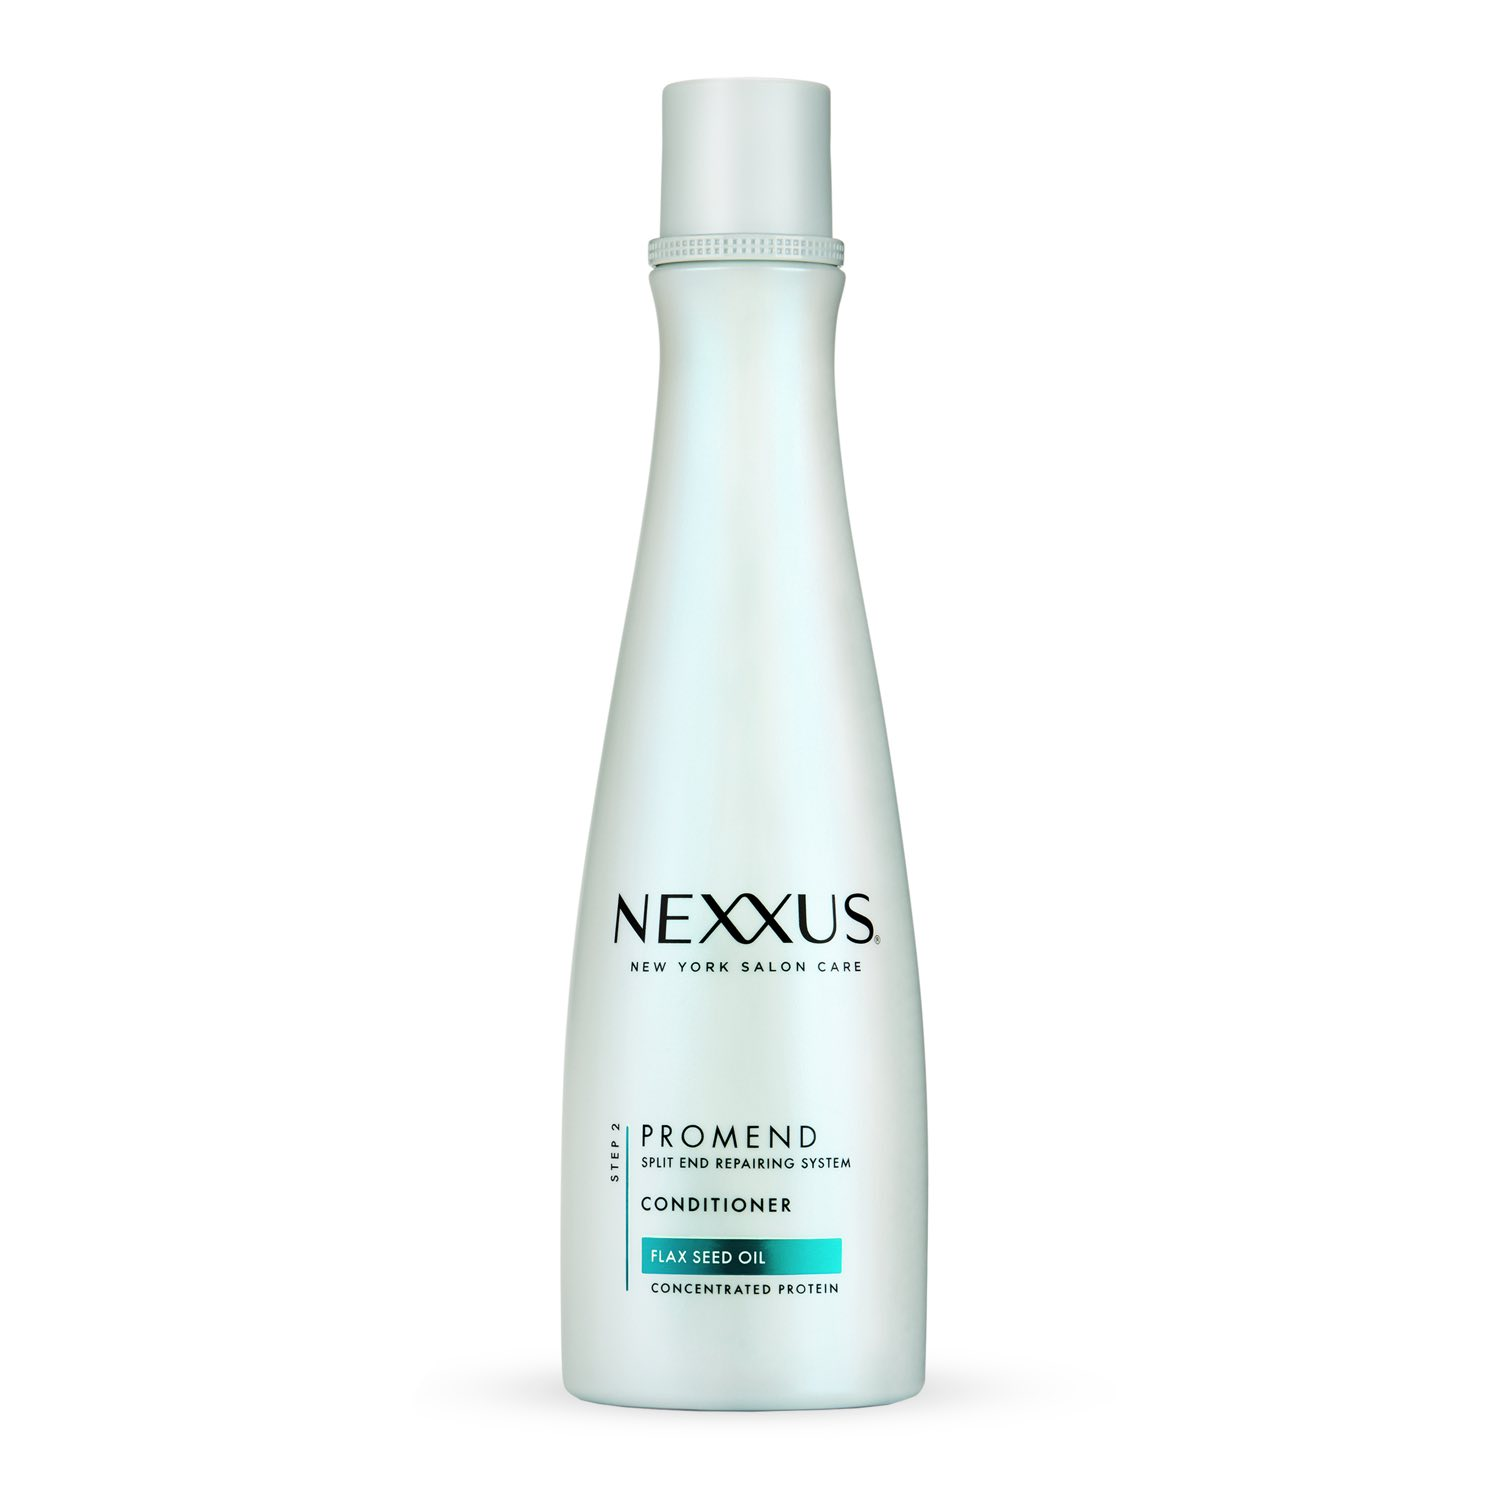 NEXXUS® PROMEND CONDITIONER FOR HAIR PRONE TO SPLIT ENDS